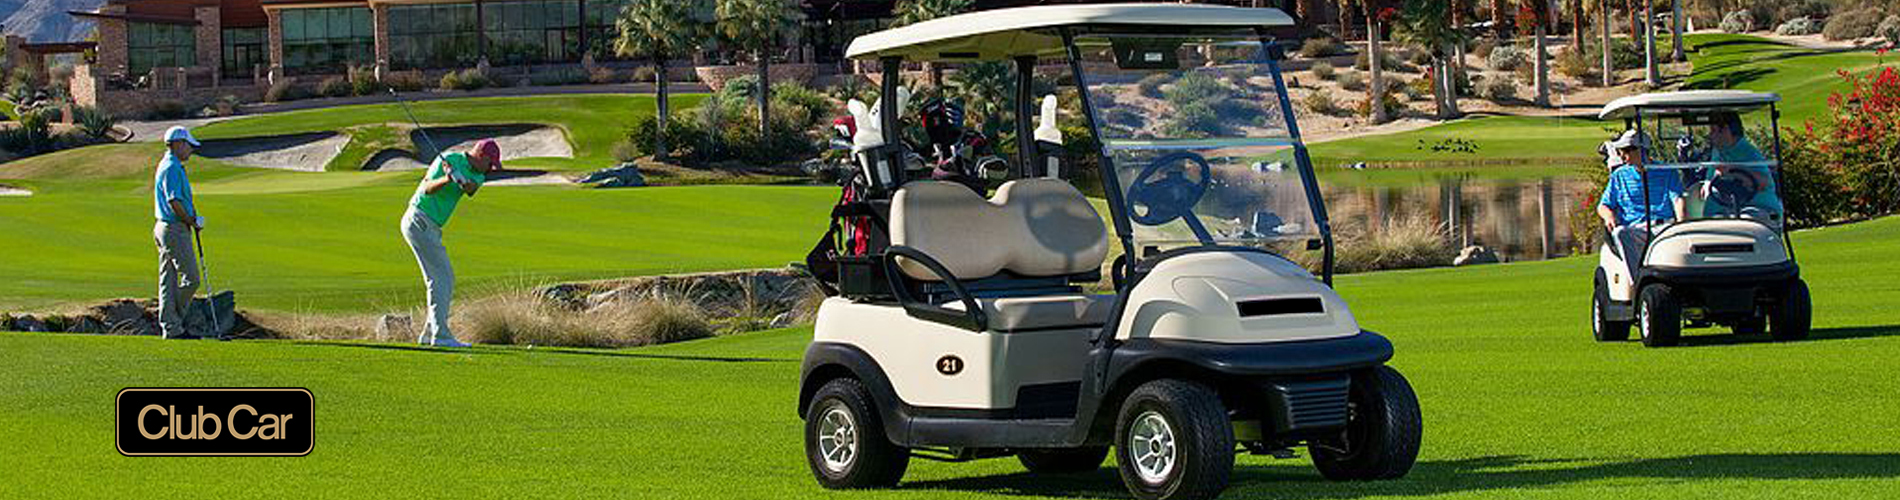 Home | Golf Cars and Golf Carts for Sale in Ft Myers